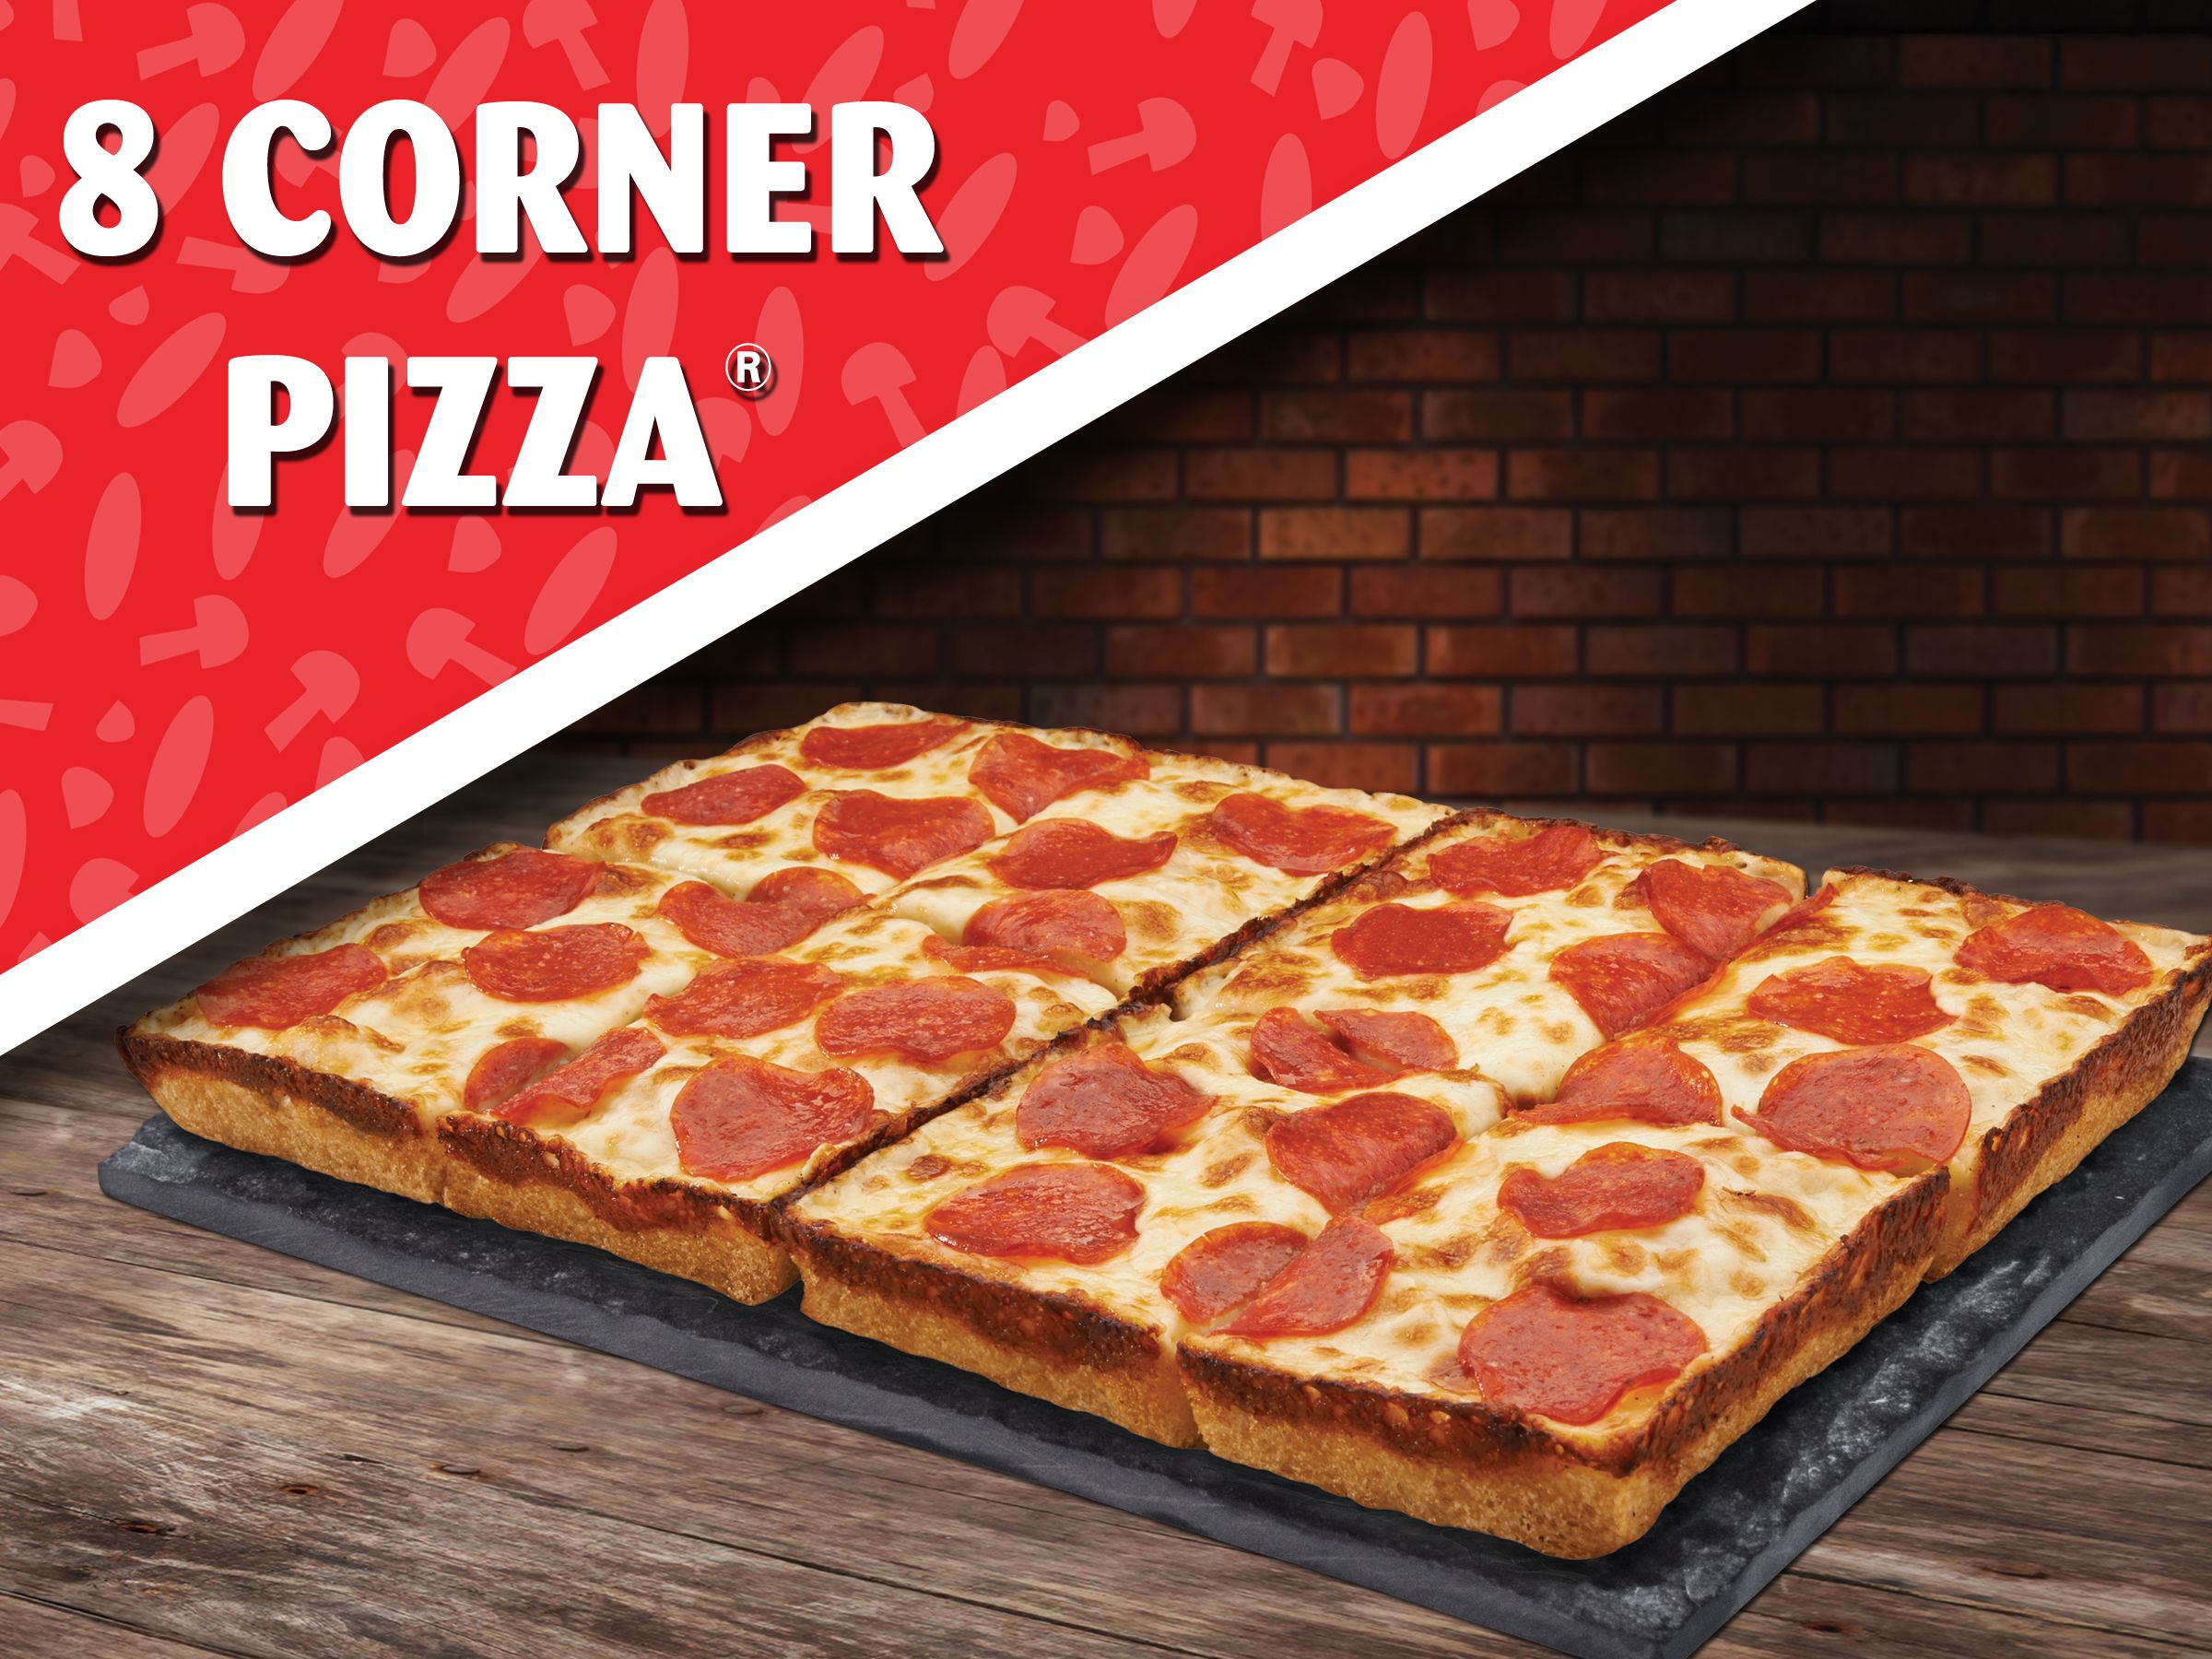 8 Corners Means 2x The Chance Of Getting The Coveted Corner Slice 8cornerpizza Pizzamath Jetspizza Jets Pizza Pizza M Mouth Watering